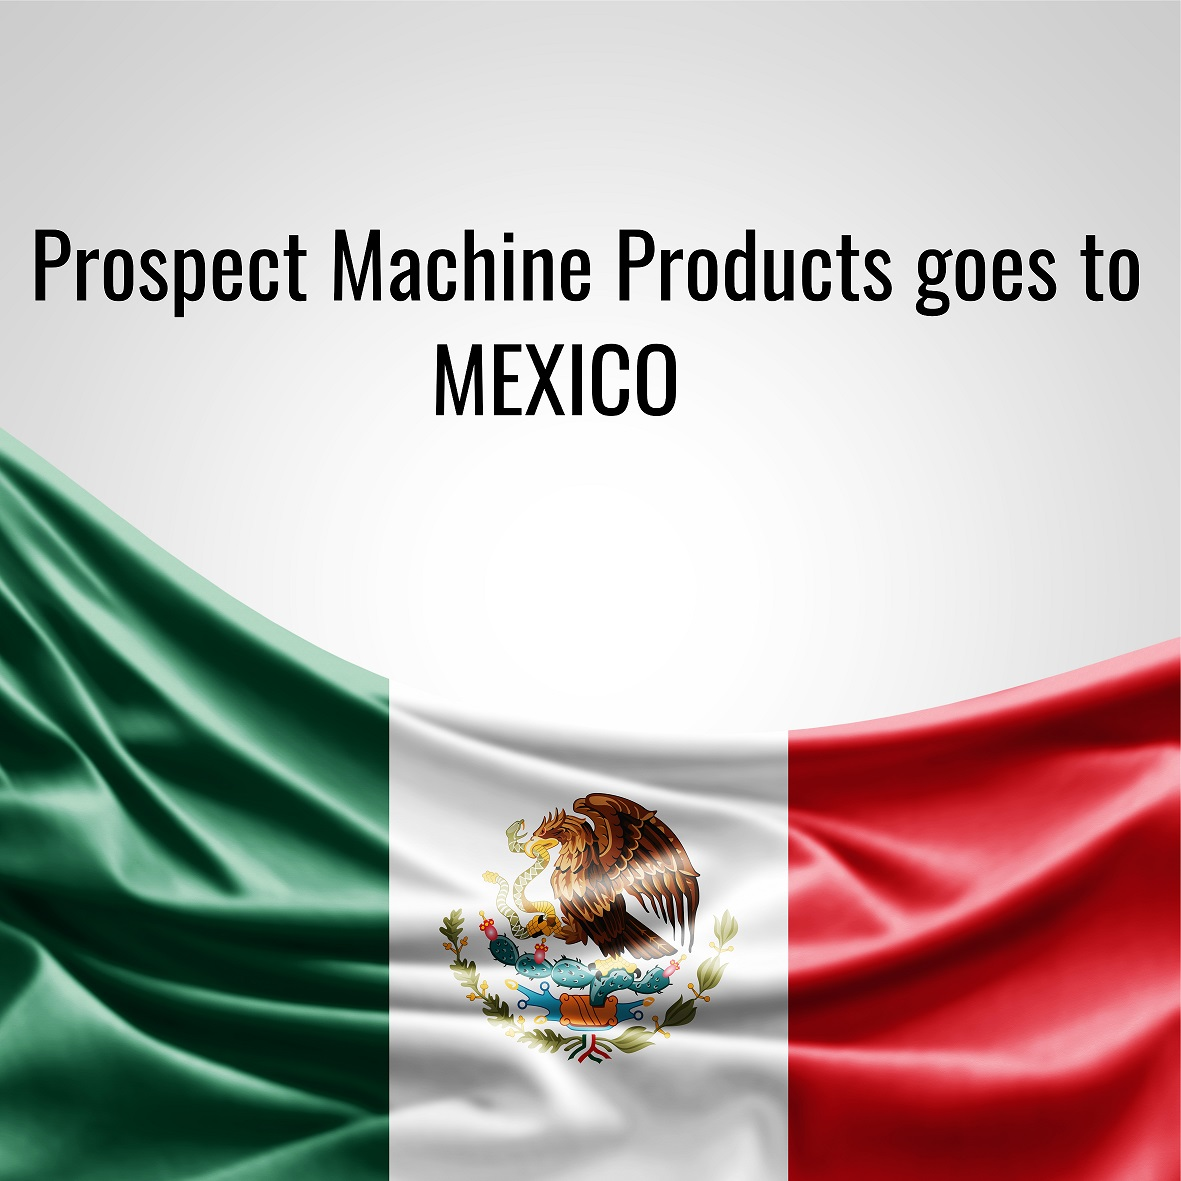 Prospect Machine Products travels to Mexico